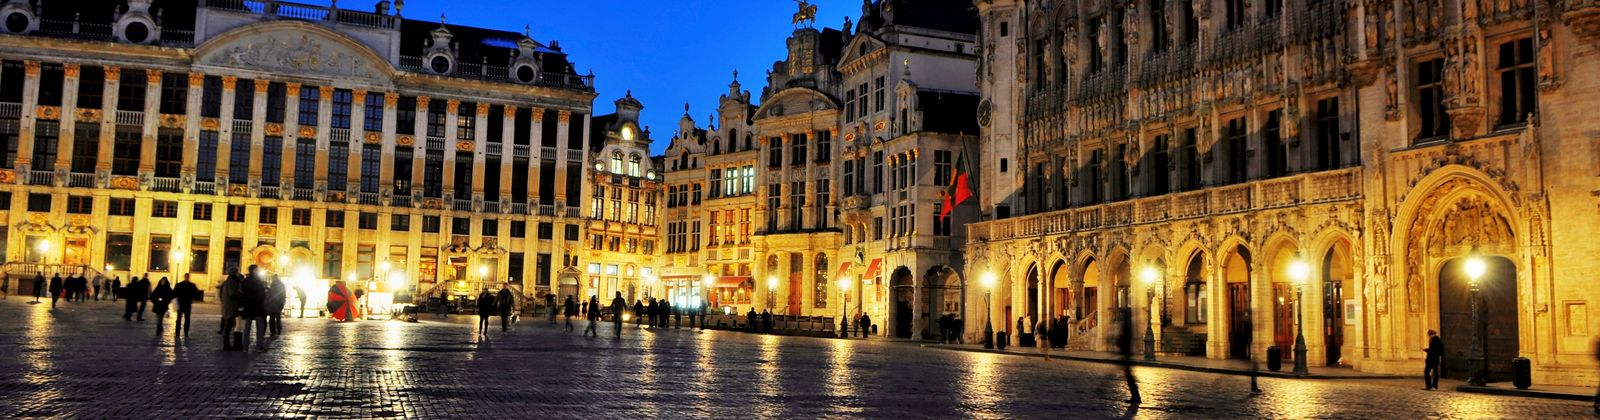 Local's guide to Brussels: best things to see and do